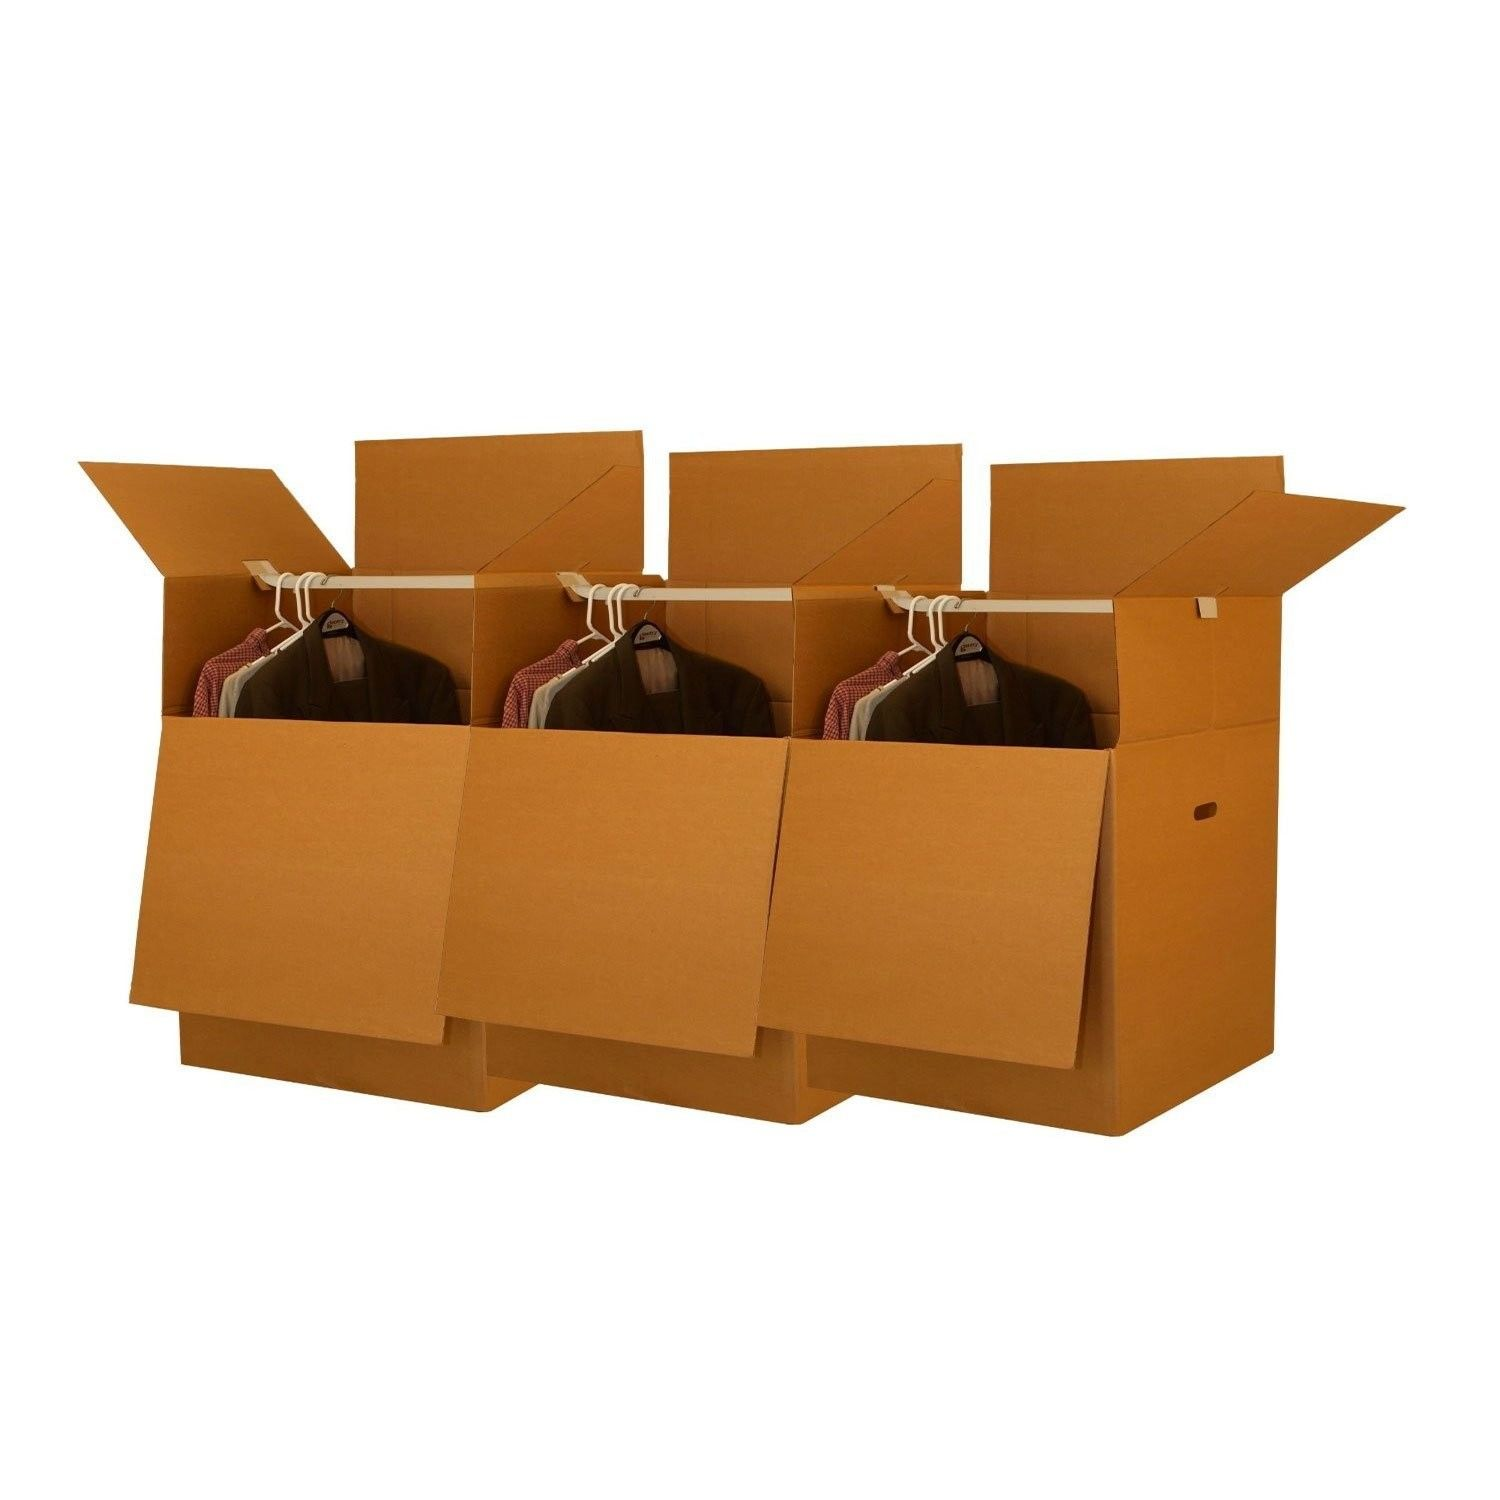 Shorty Space Saving Wardrobe Moving Boxes Bundle Of 3 20 Quot X